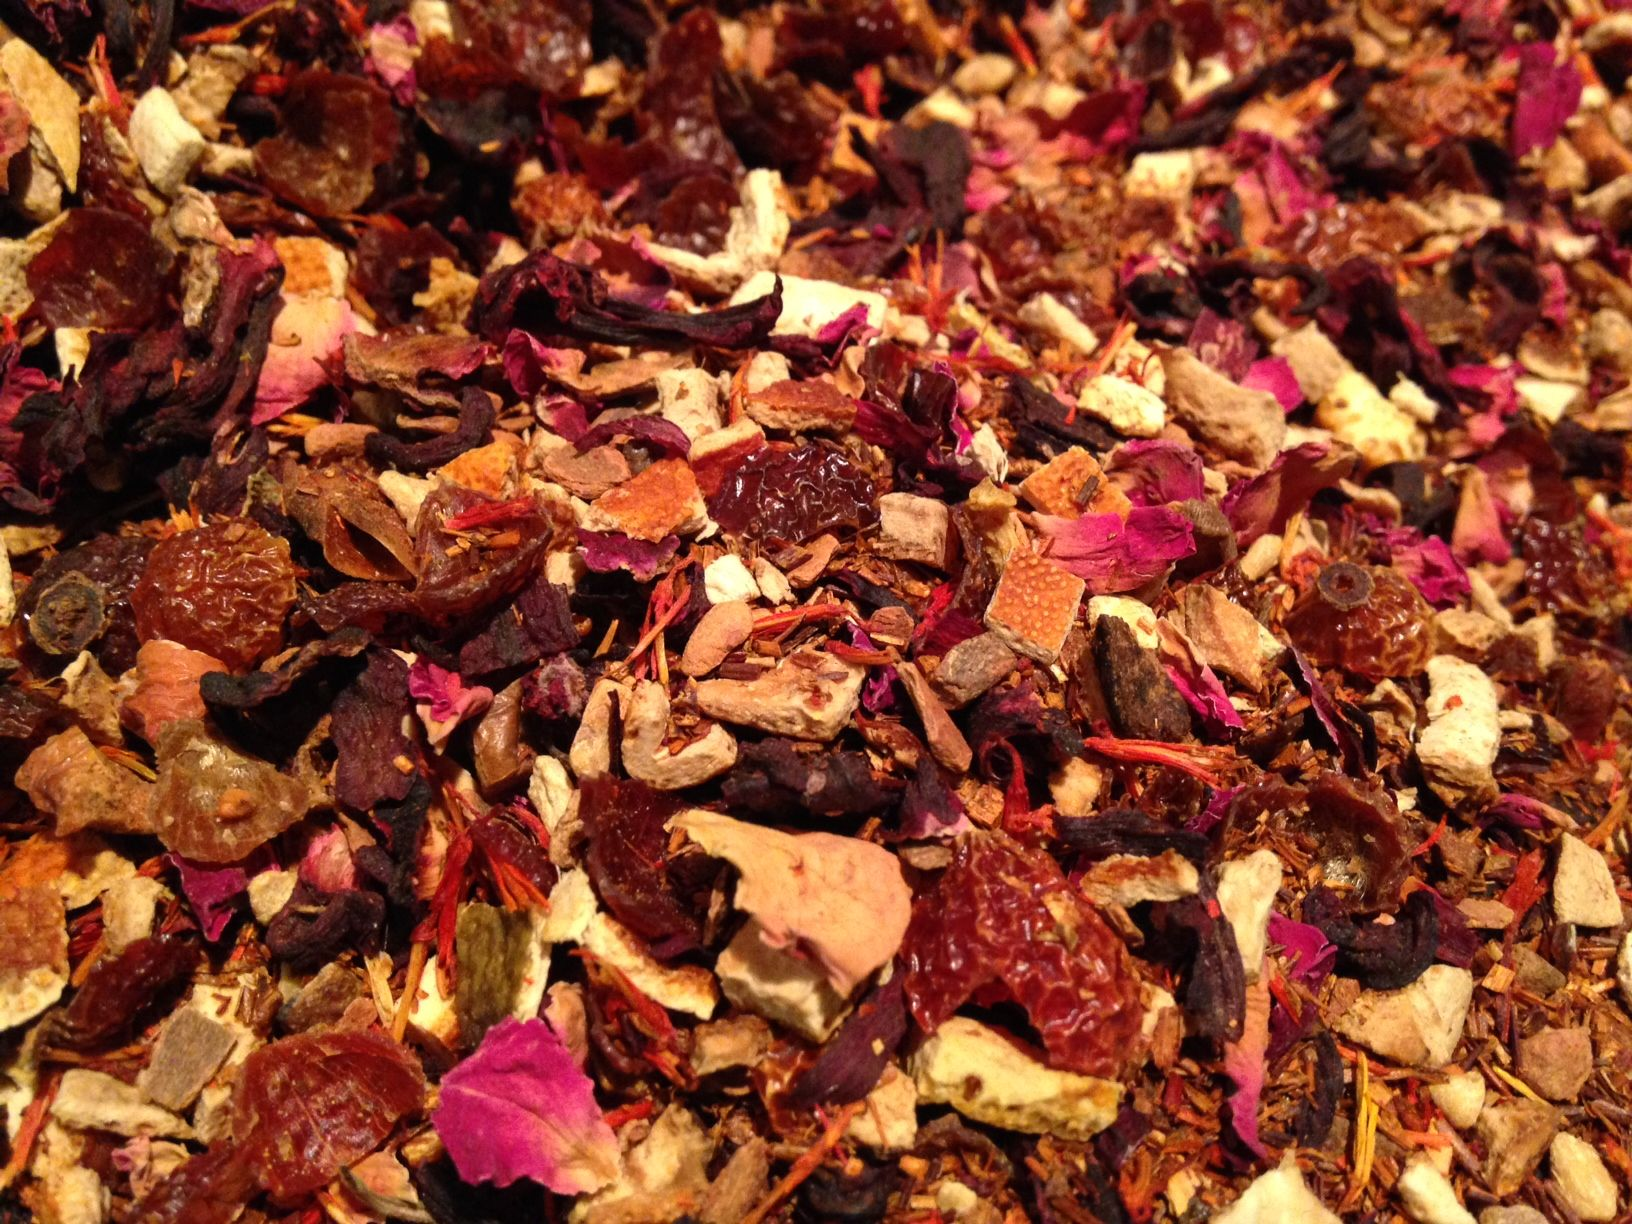 Umbutu Tea: I am Because We are. A tea to bless and amplify our connection to all of life.  Infused with Joy, Strength, and Deep Connection.  Herbal Tea Blend: Rooibos, Orange Peel, Hibiscus, Apple Pieces, Rosehips, Safflowers, Rose Petals, Vanilla, Lemon, Cinnamon, Ginger  https://www.etsy.com/listing/213219131/umbutu-tea?